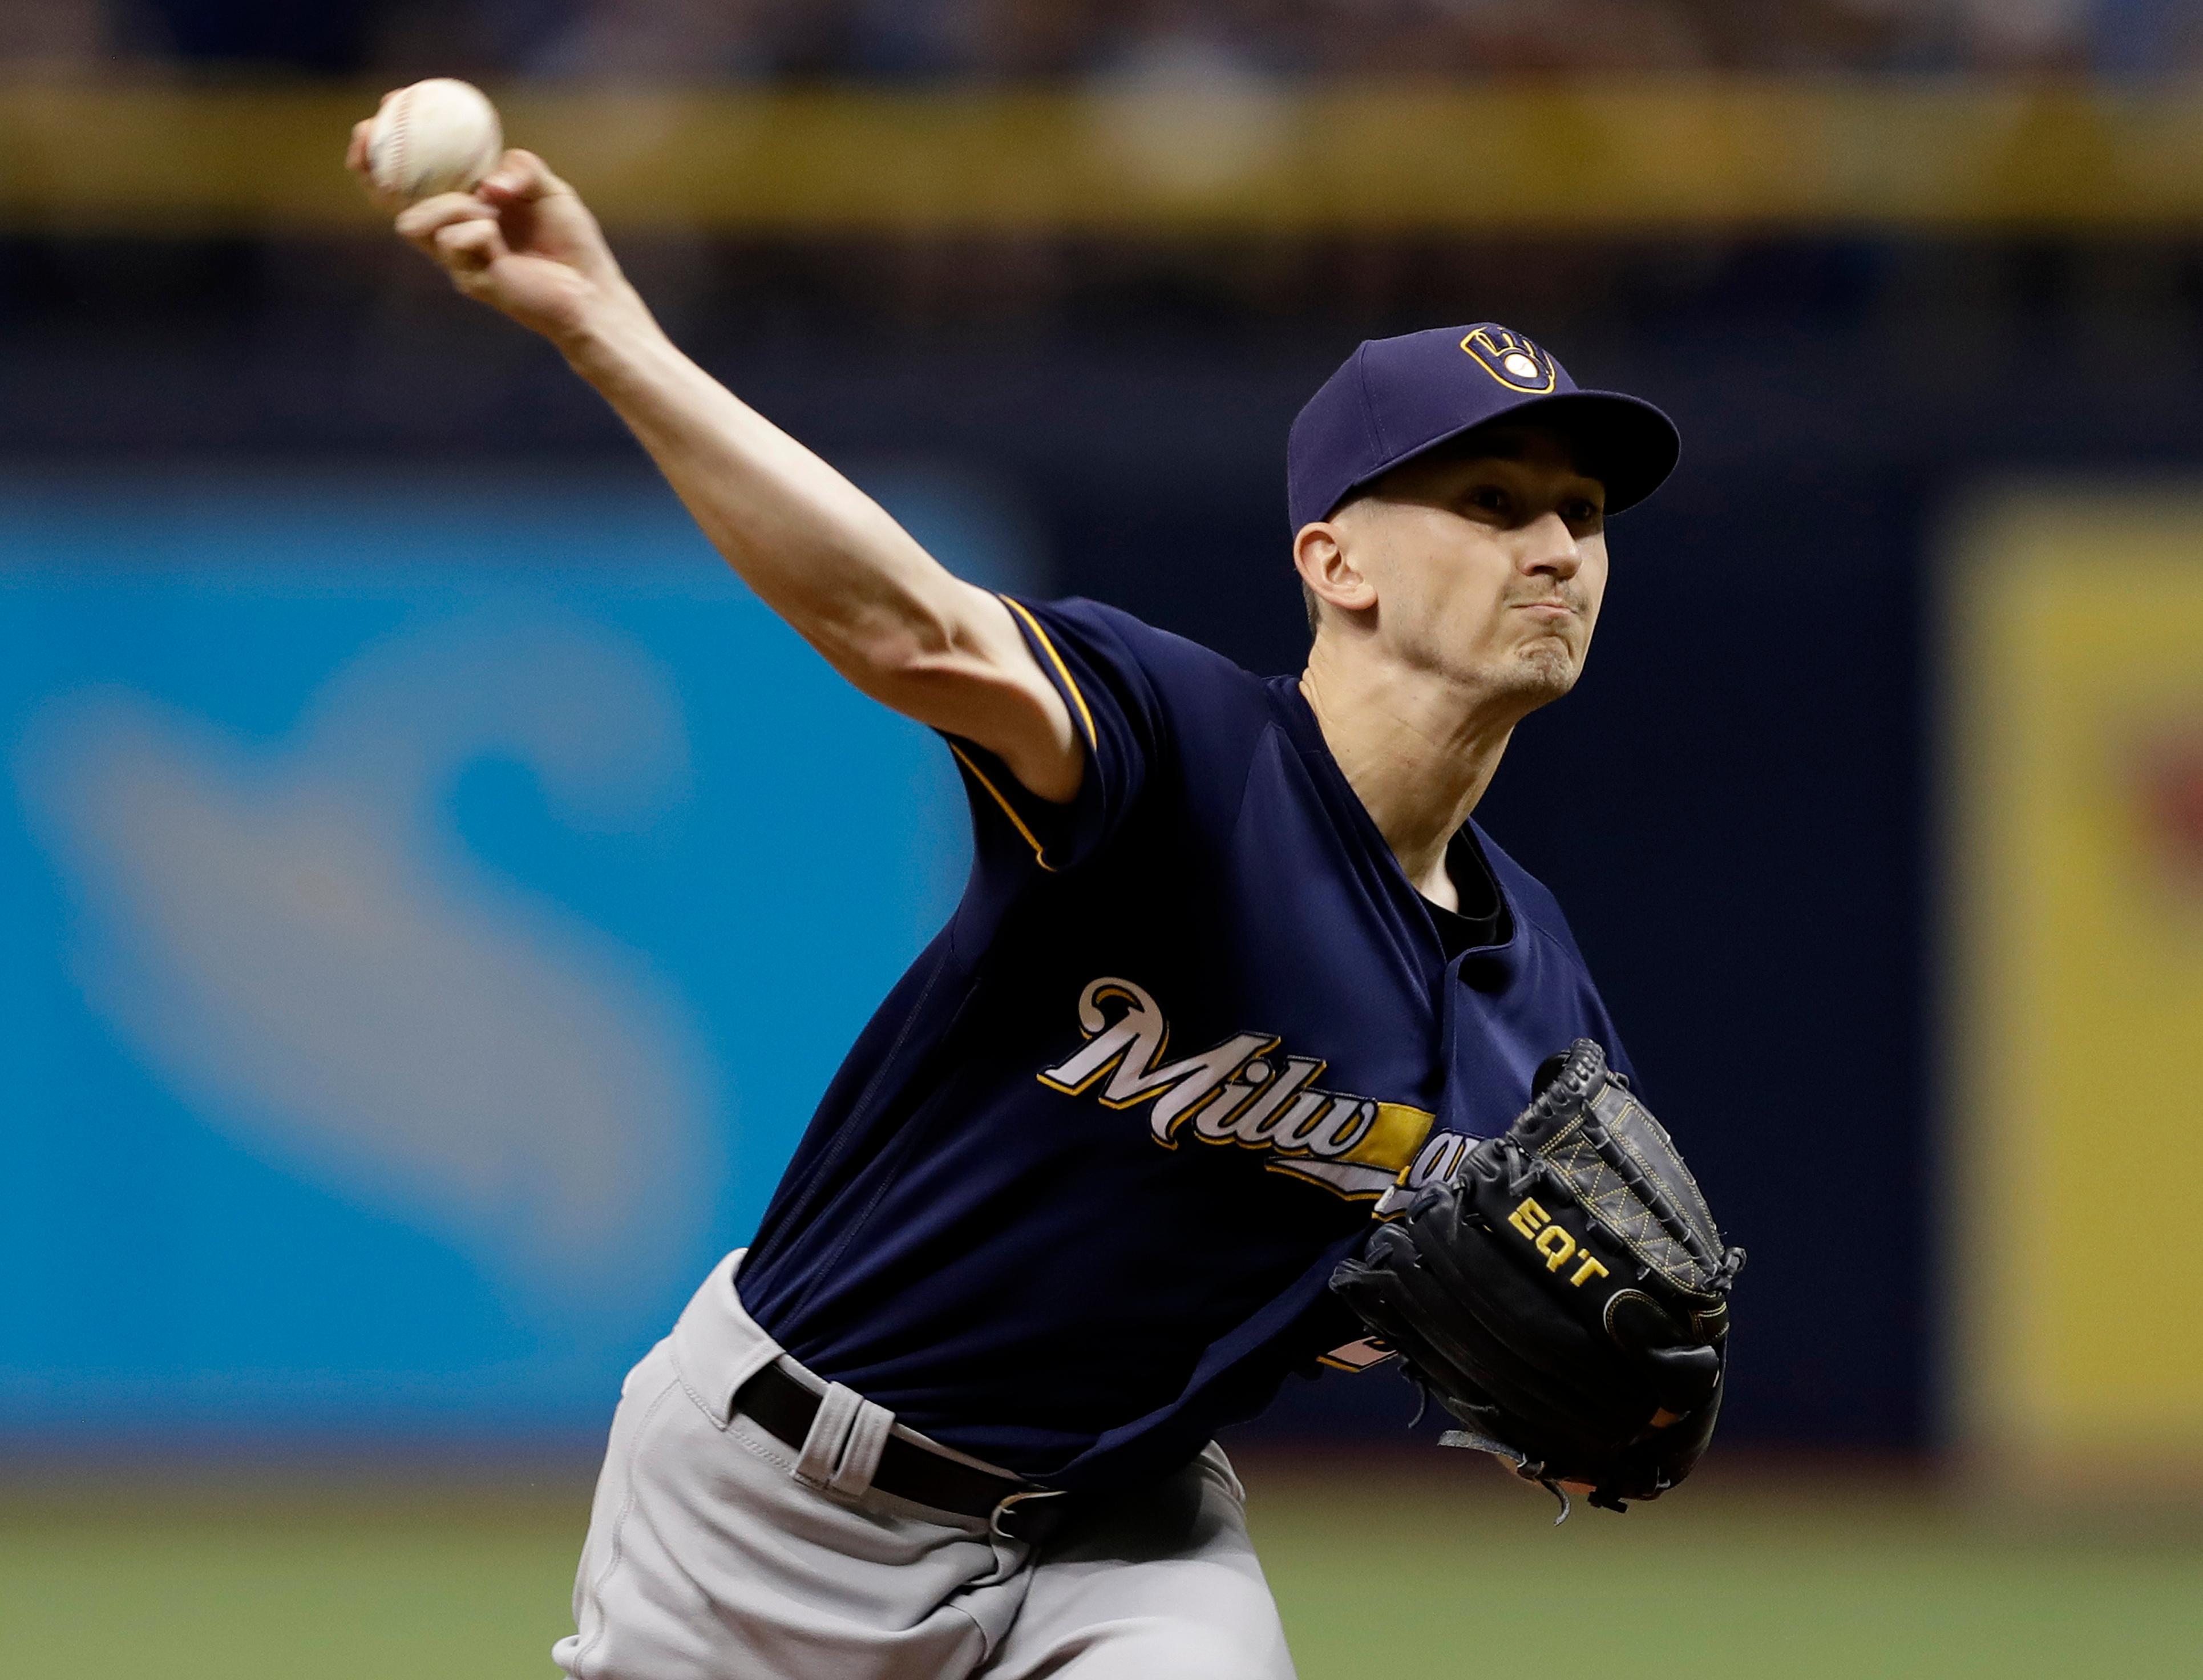 Milwaukee Brewers' Zach Davies pitches to the Tampa Bay Rays during the first inning Saturday, Aug. 5, 2017, in St. Petersburg, Fla. (AP Photo/Chris O'Meara)